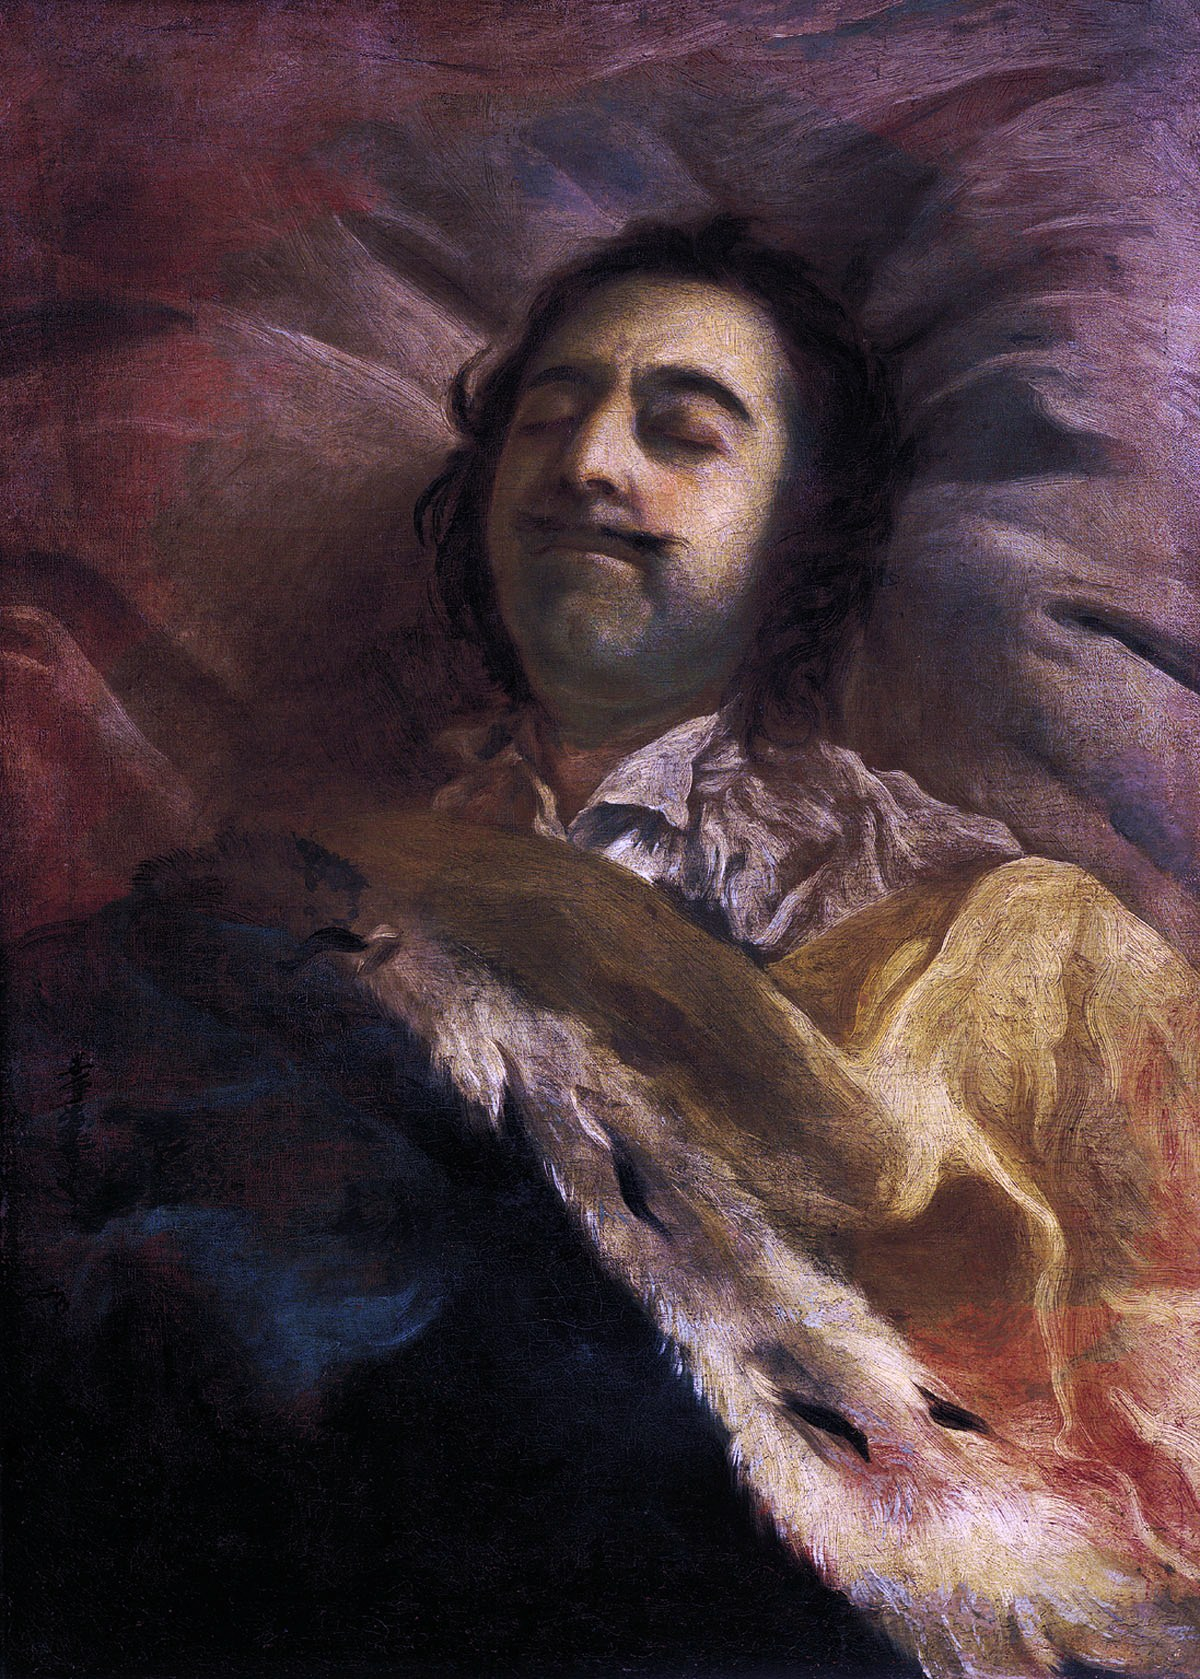 deathbed_portrait_of_peter_i_by_i_nikitin_1725_russian_museum.jpg